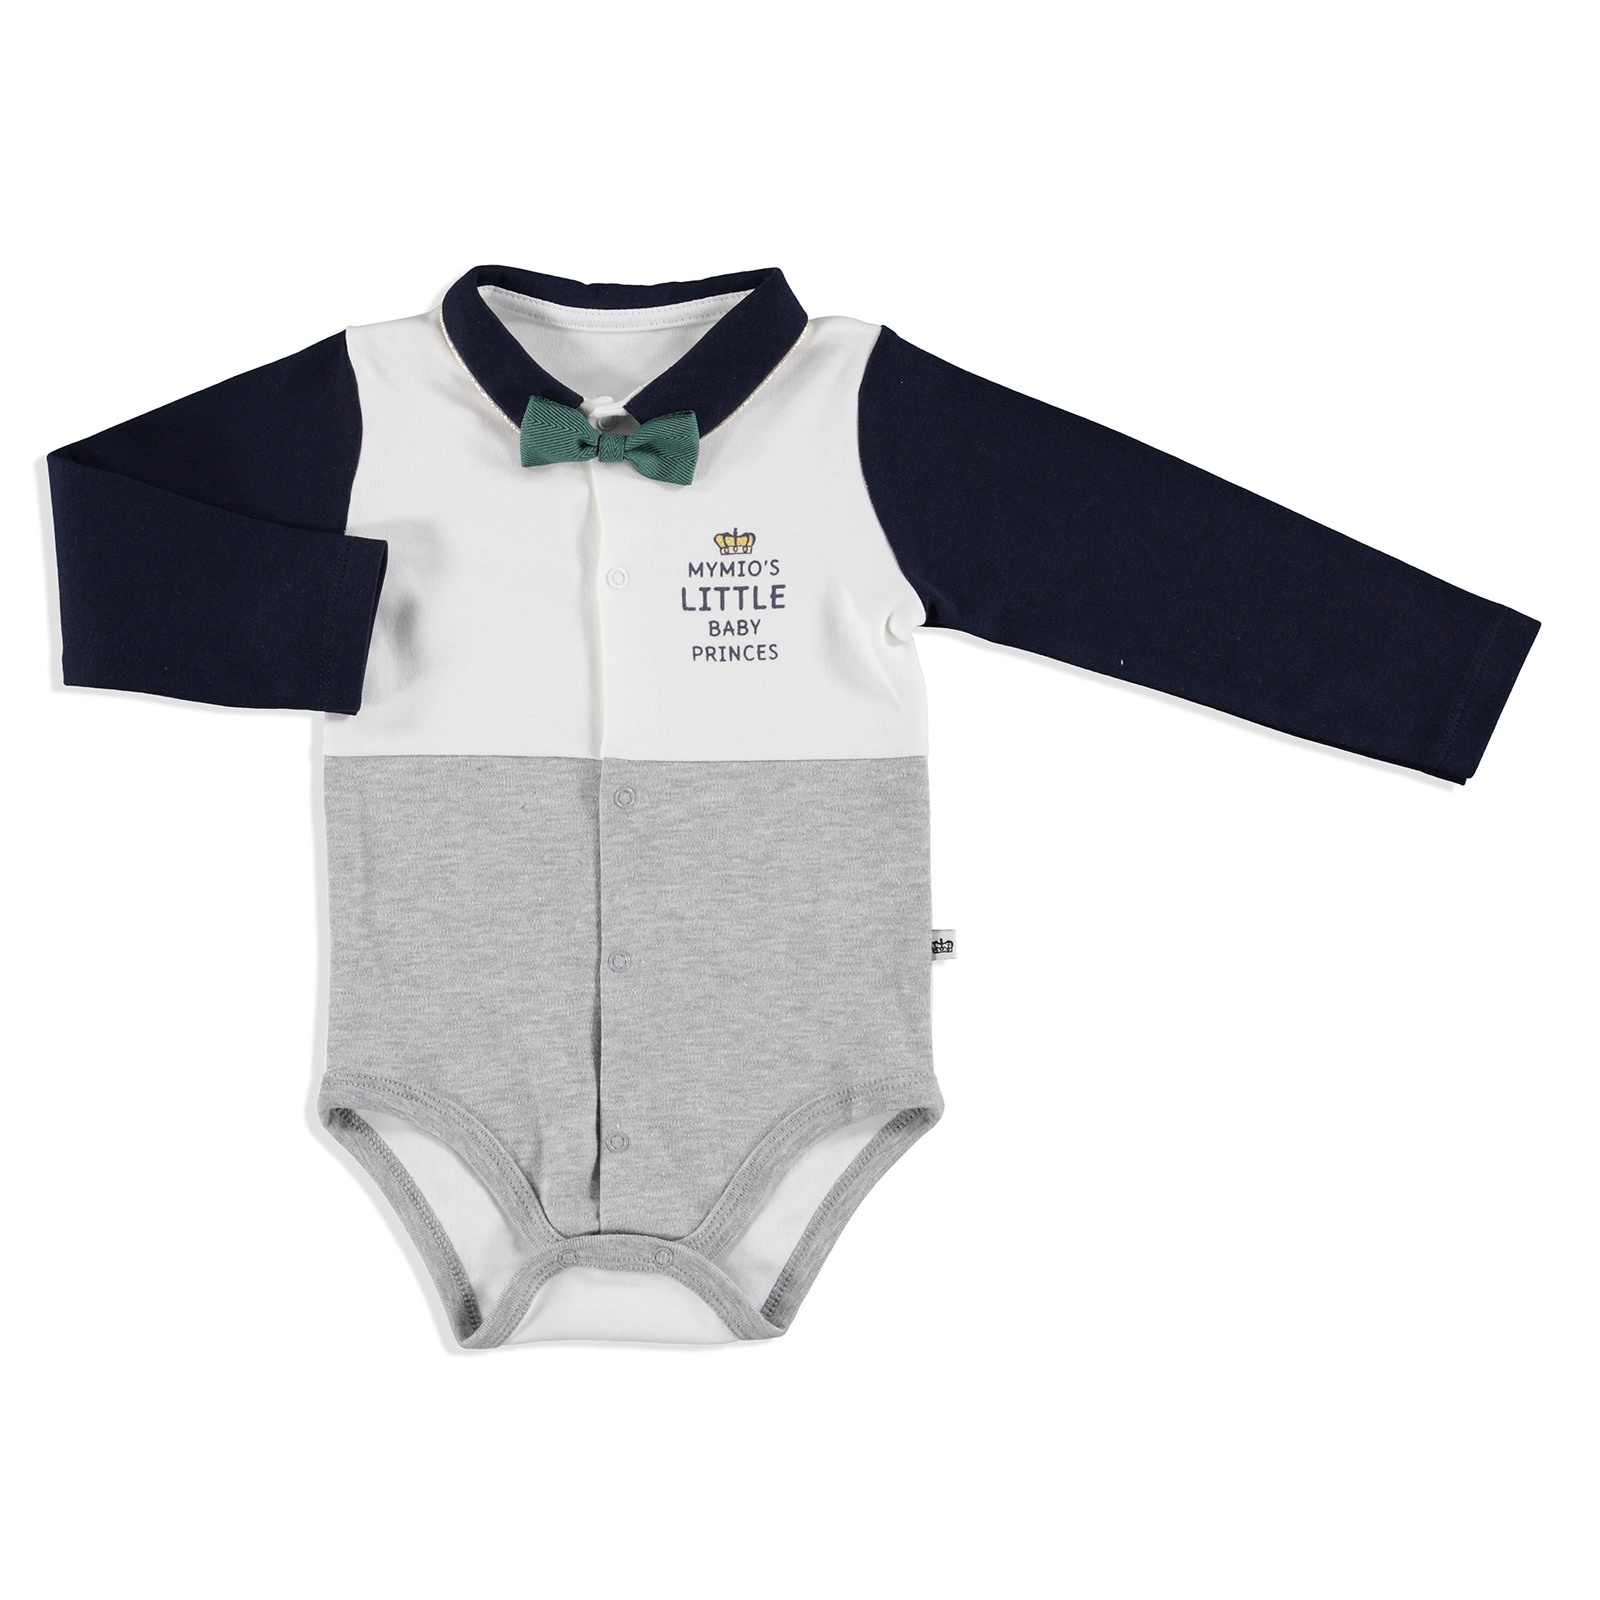 Ebebek Mymio Crested Interlock Baby Bow Long Sleeve Bodysuit